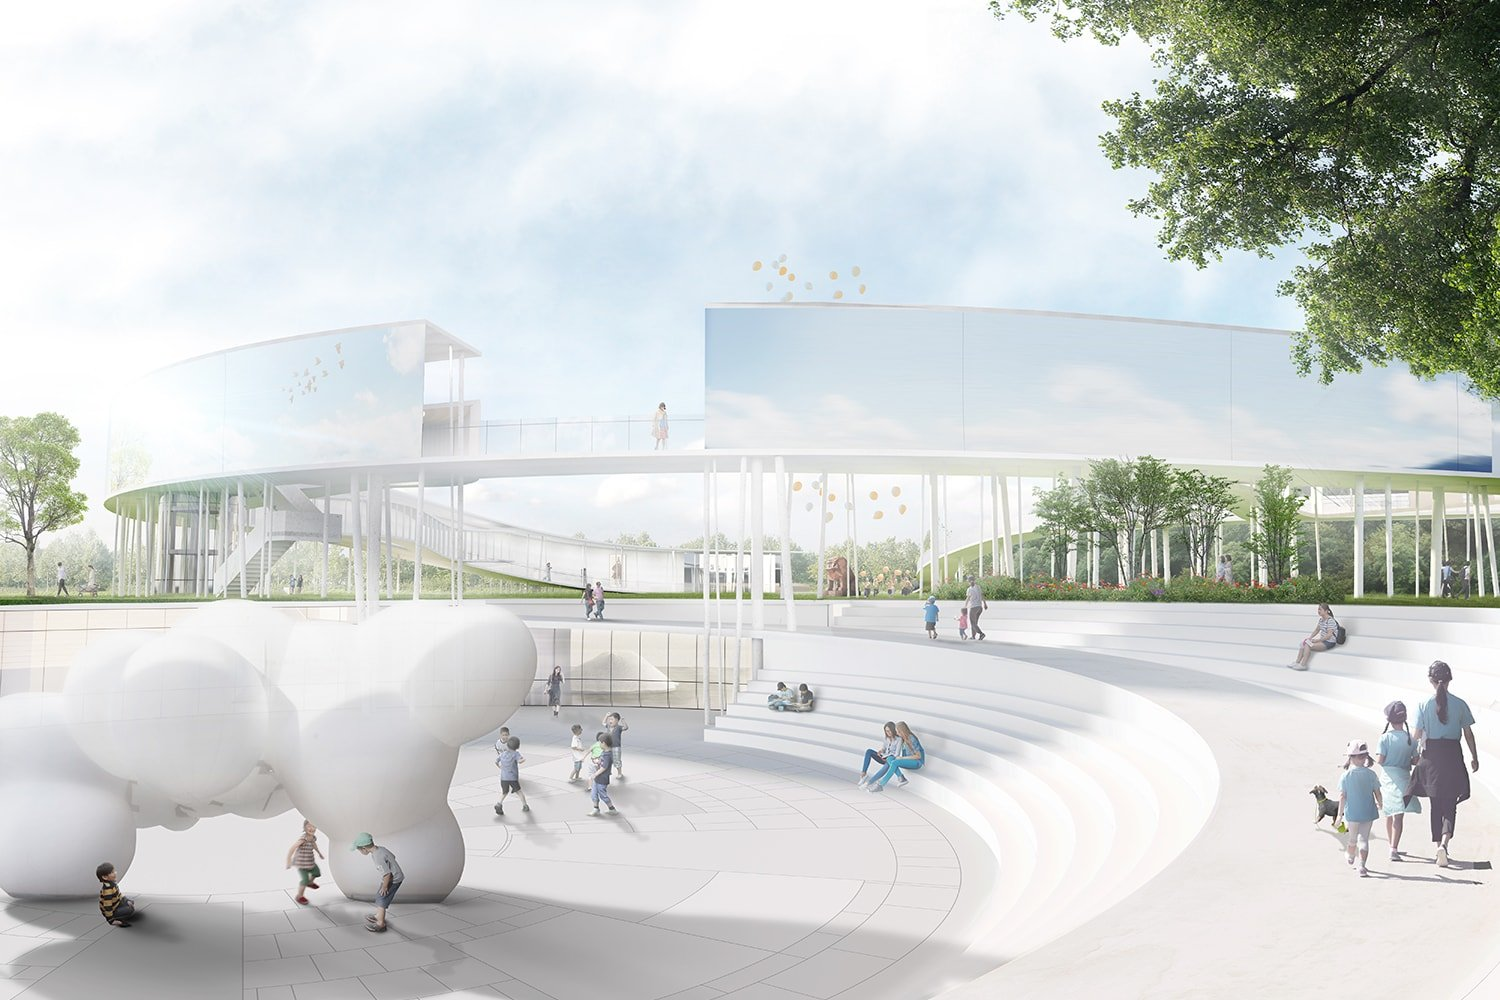 Arts Square and Visitor Center Approach View 3D Visualization: Heeseung Choi / A+U Lab